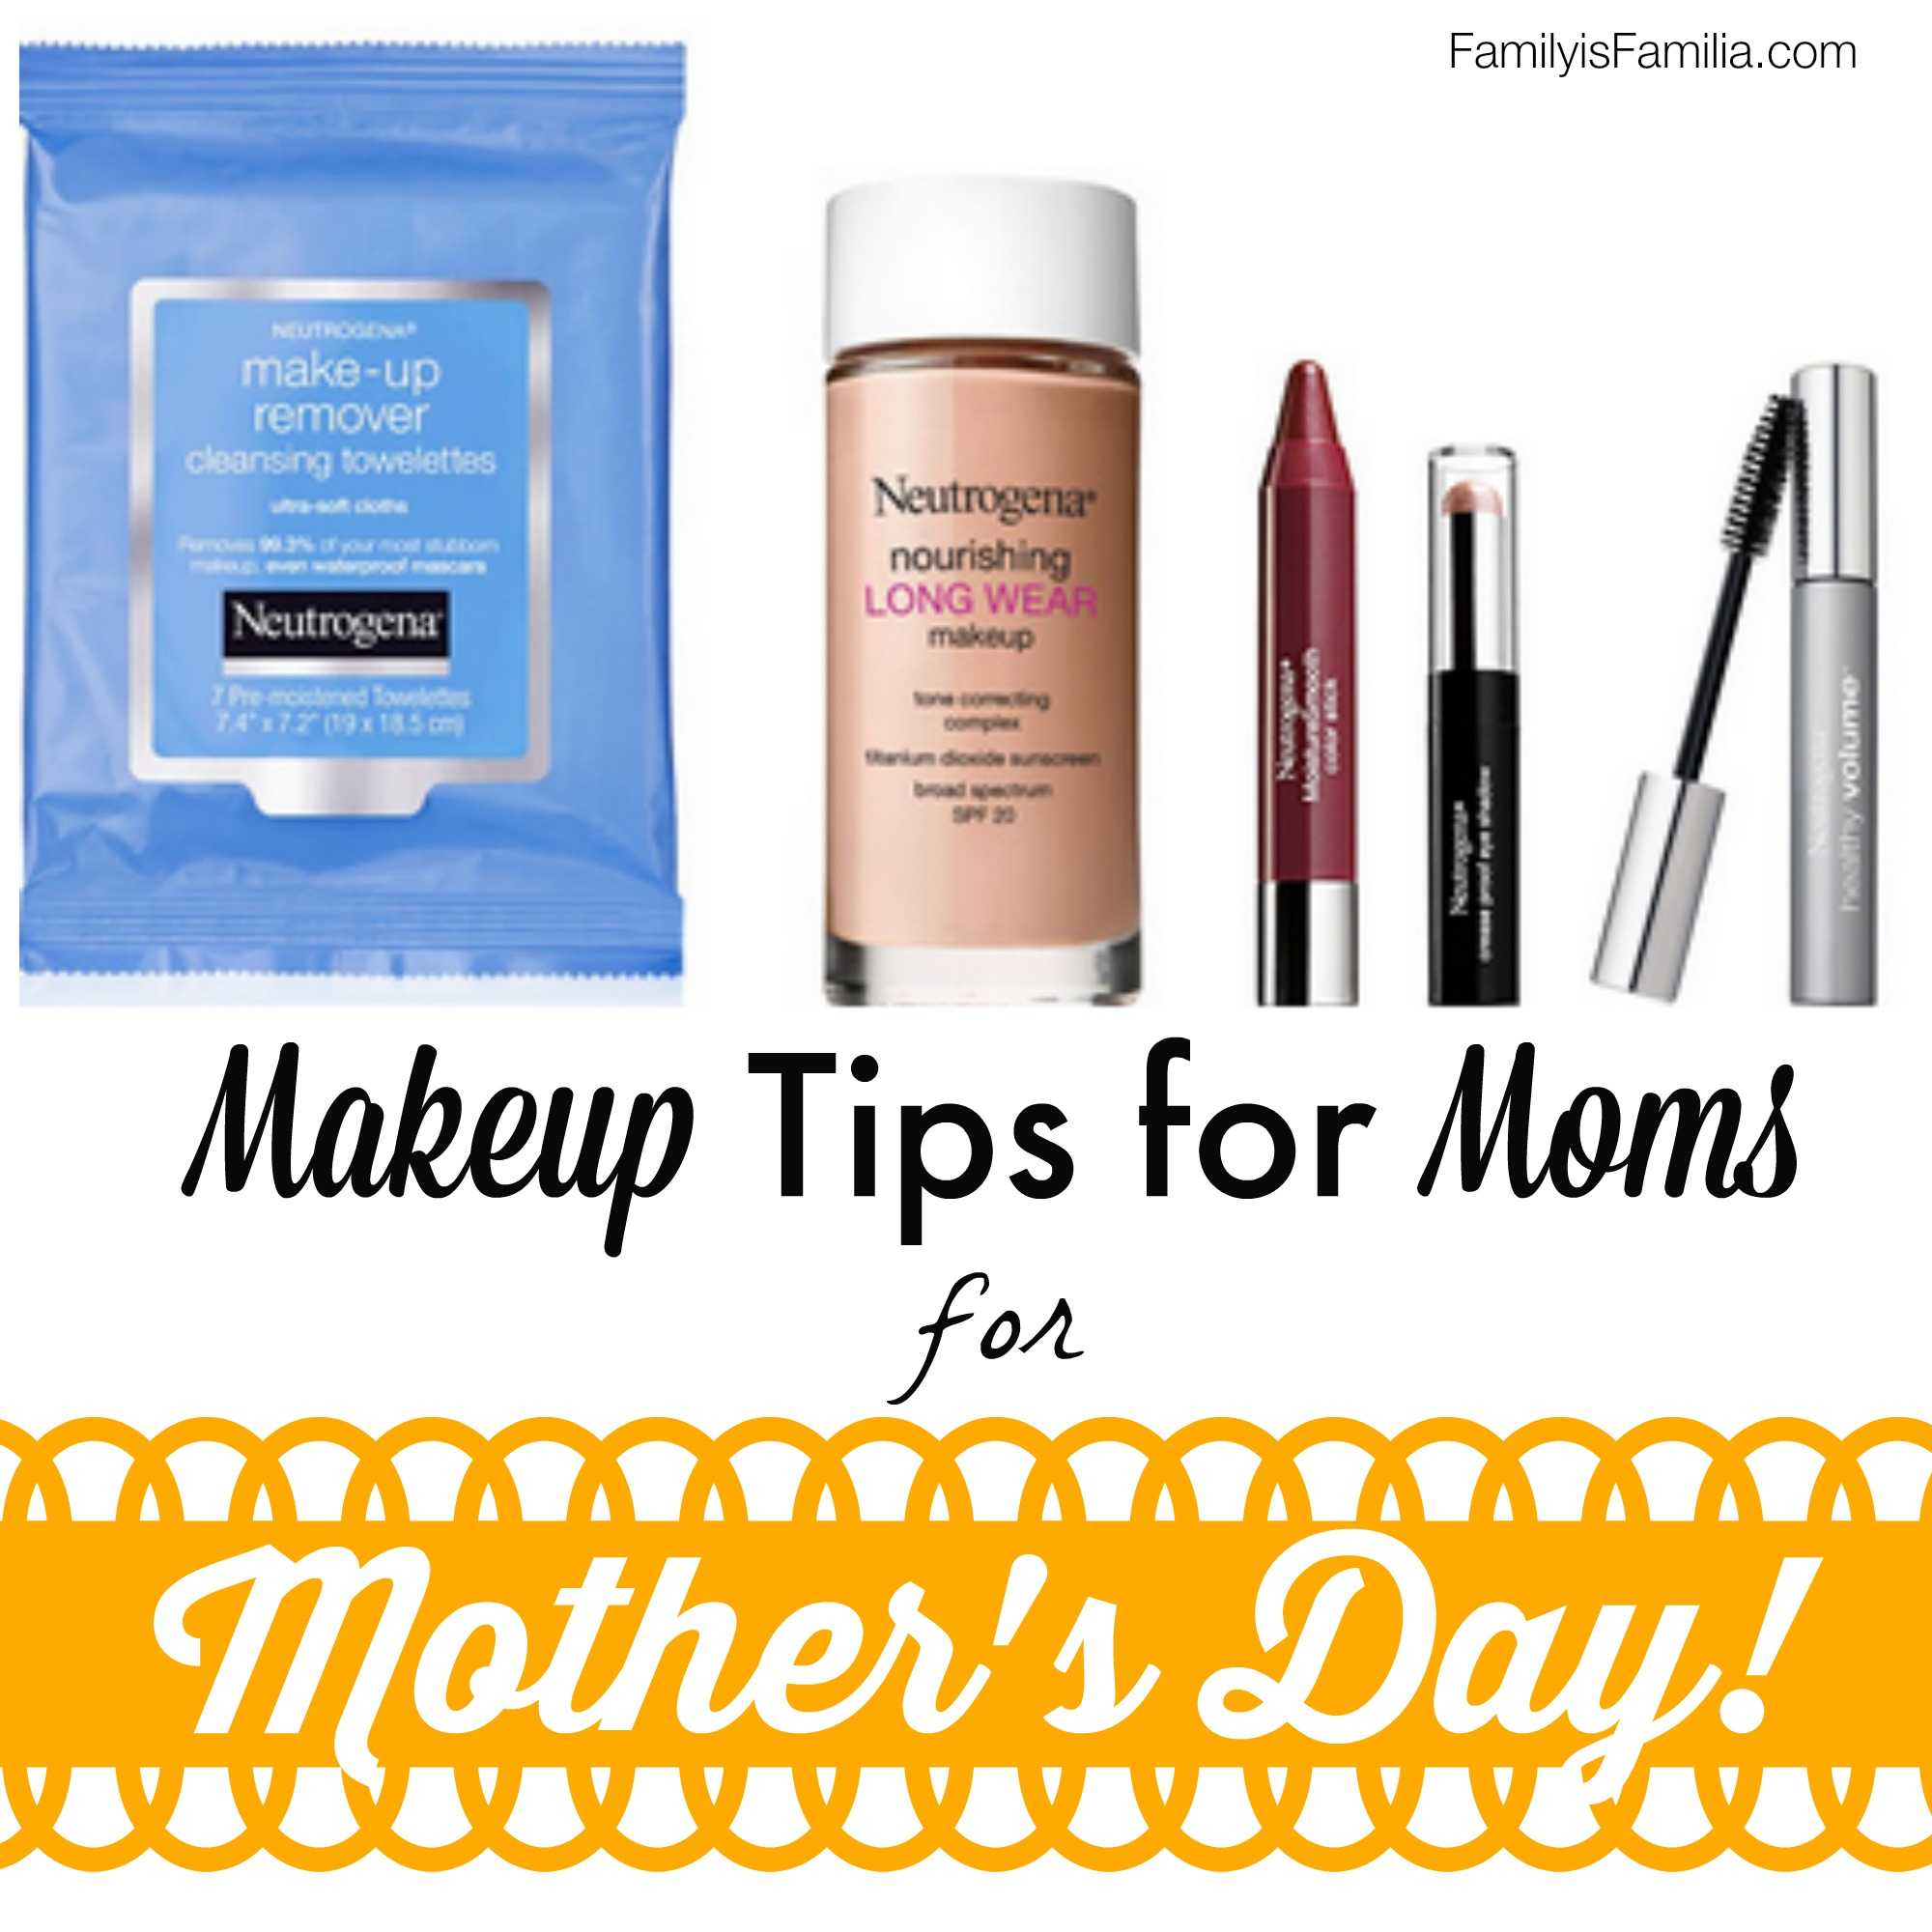 makeup-tips-moms-mothers-day